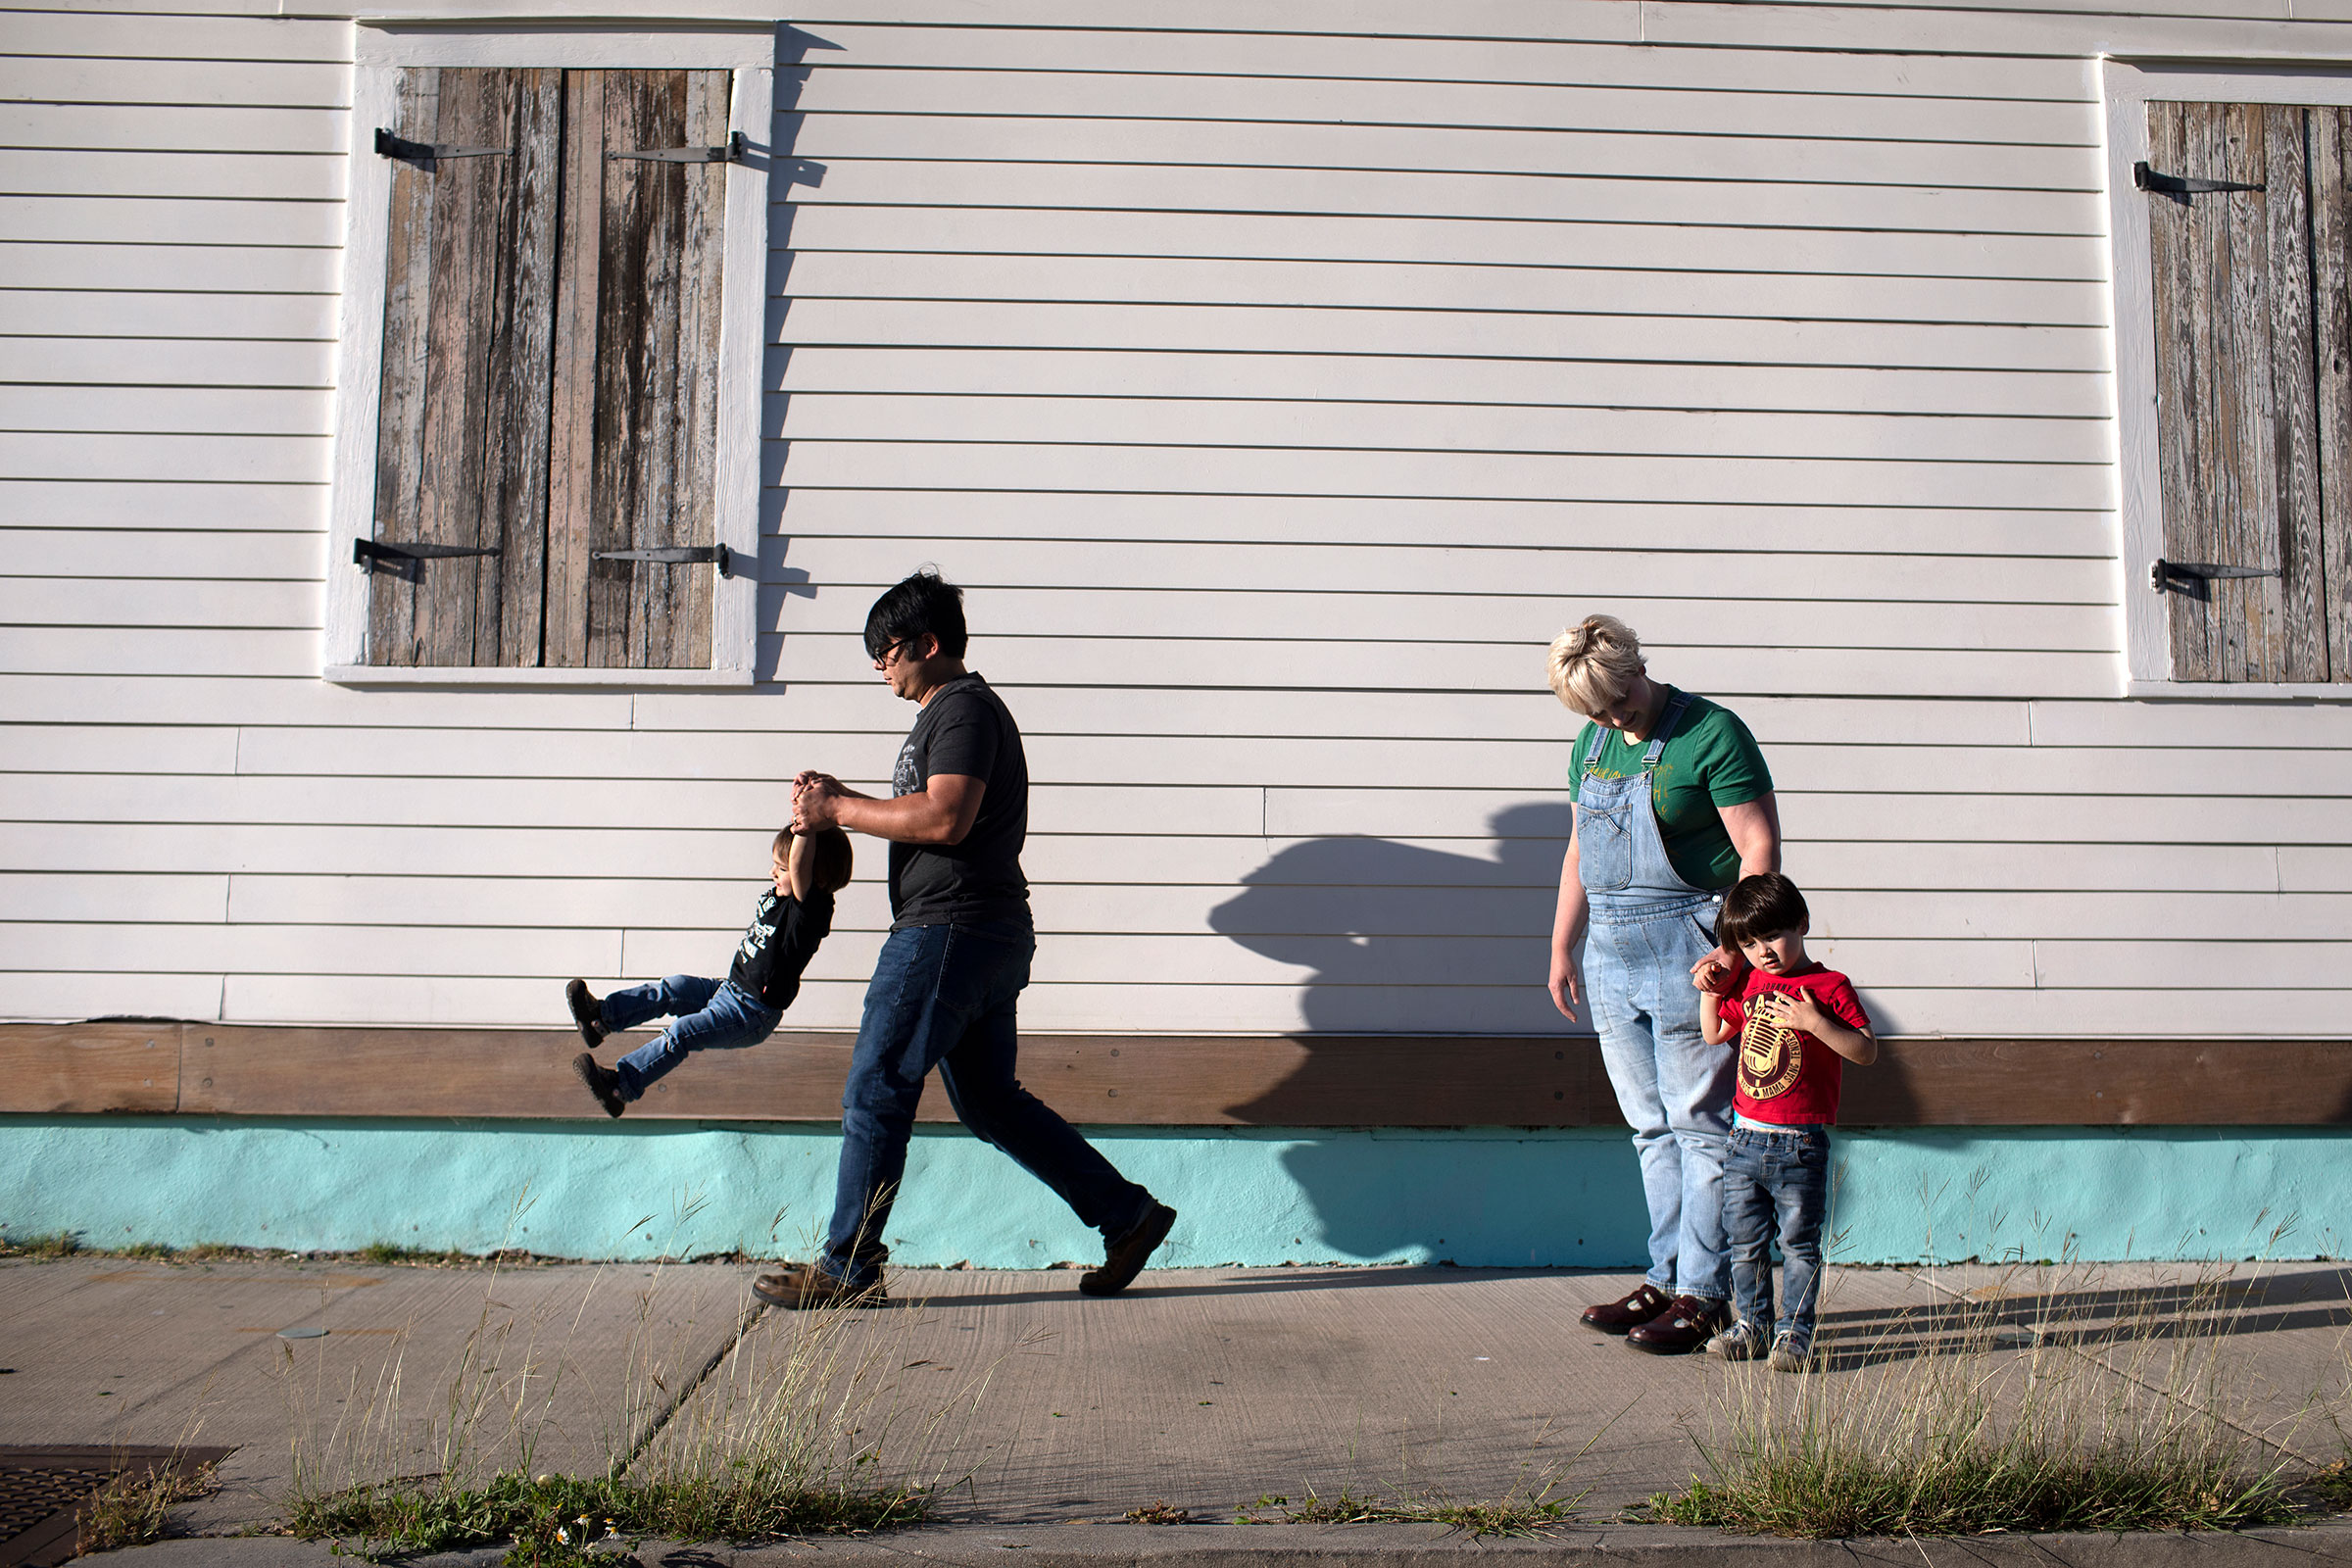 Mickey Harrison and his wife Laurie Halbrook take their kids eighteen month old Jack, left, and Michael, 3, on a walk through their neighborhood in New Orleans.